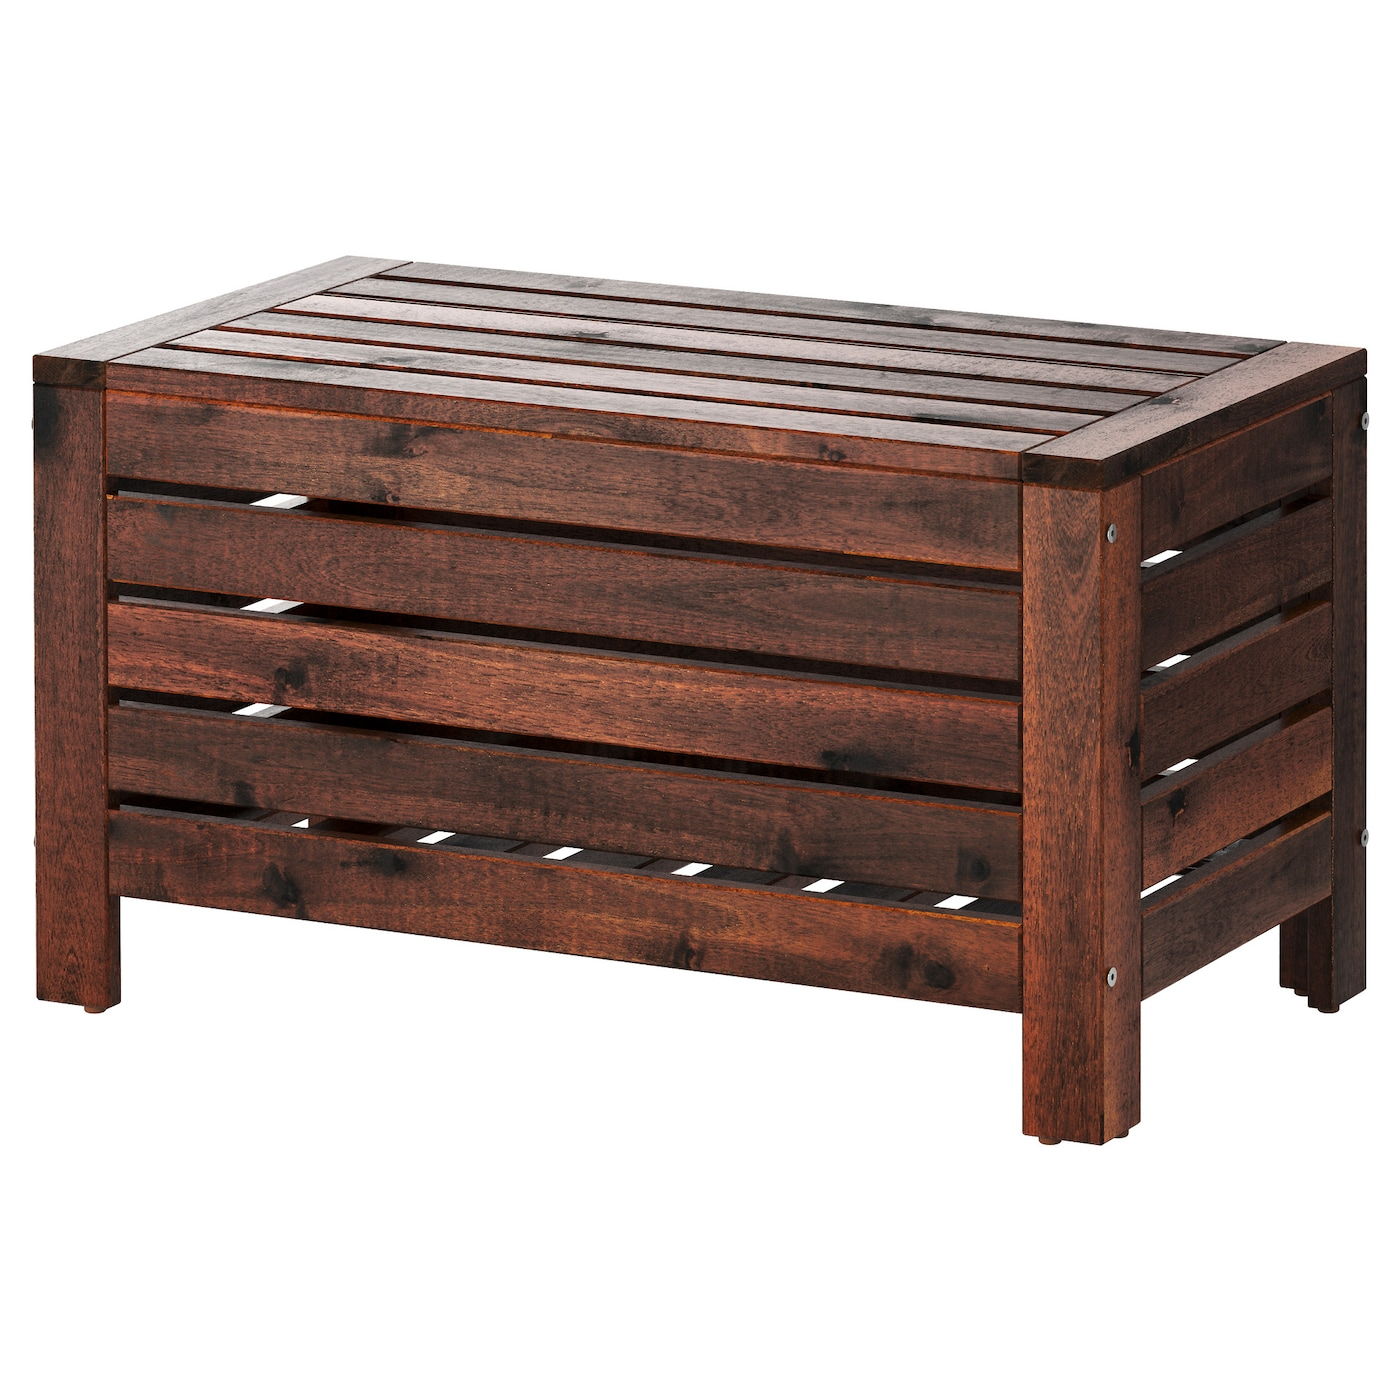 Pplar storage bench outdoor brown stained 80x41 cm ikea for Outdoor furniture benches